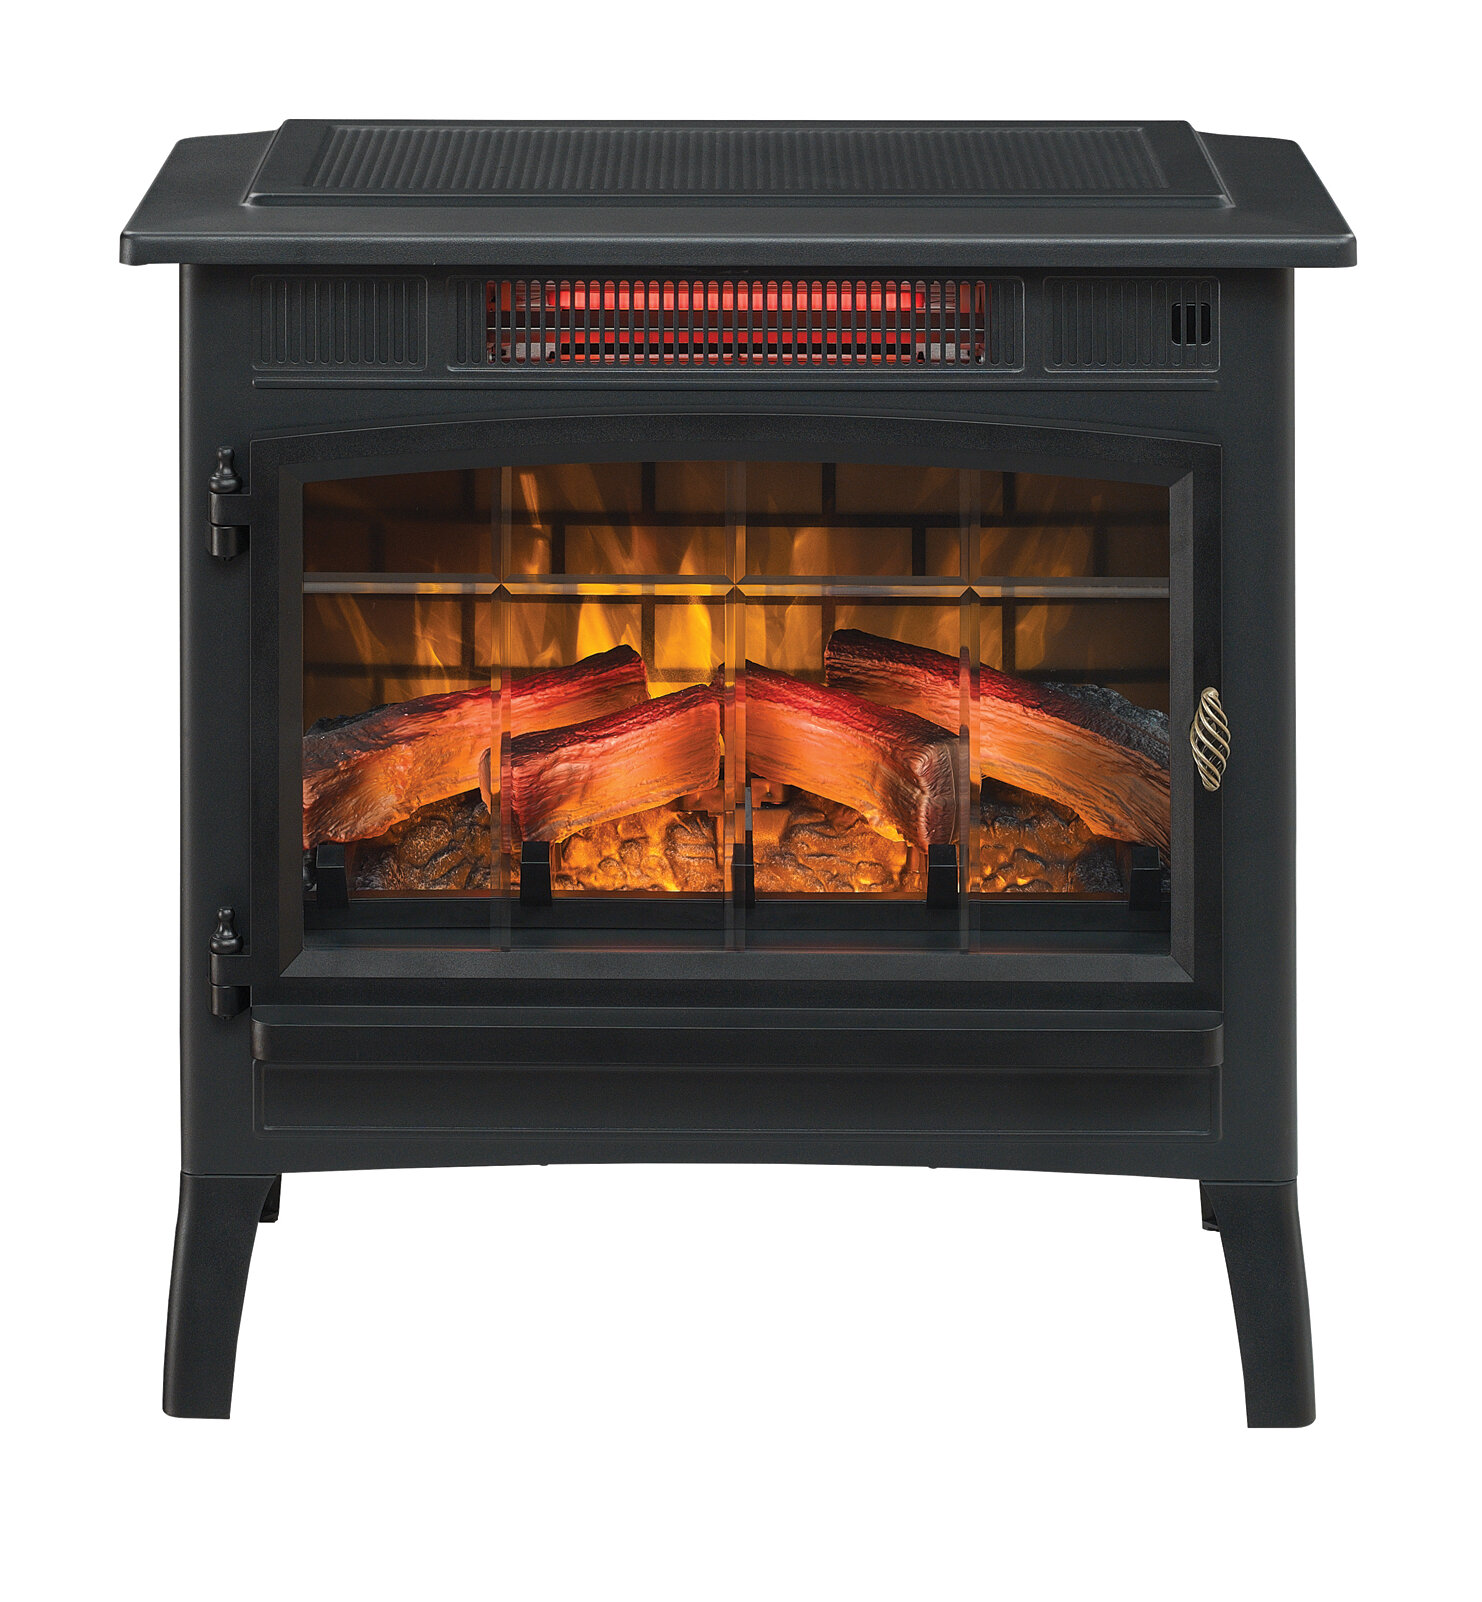 electric potbelly stoves wayfair rh wayfair com Sheffield This Dimplex Electric Stove Sears Electric Pot Belly Stove